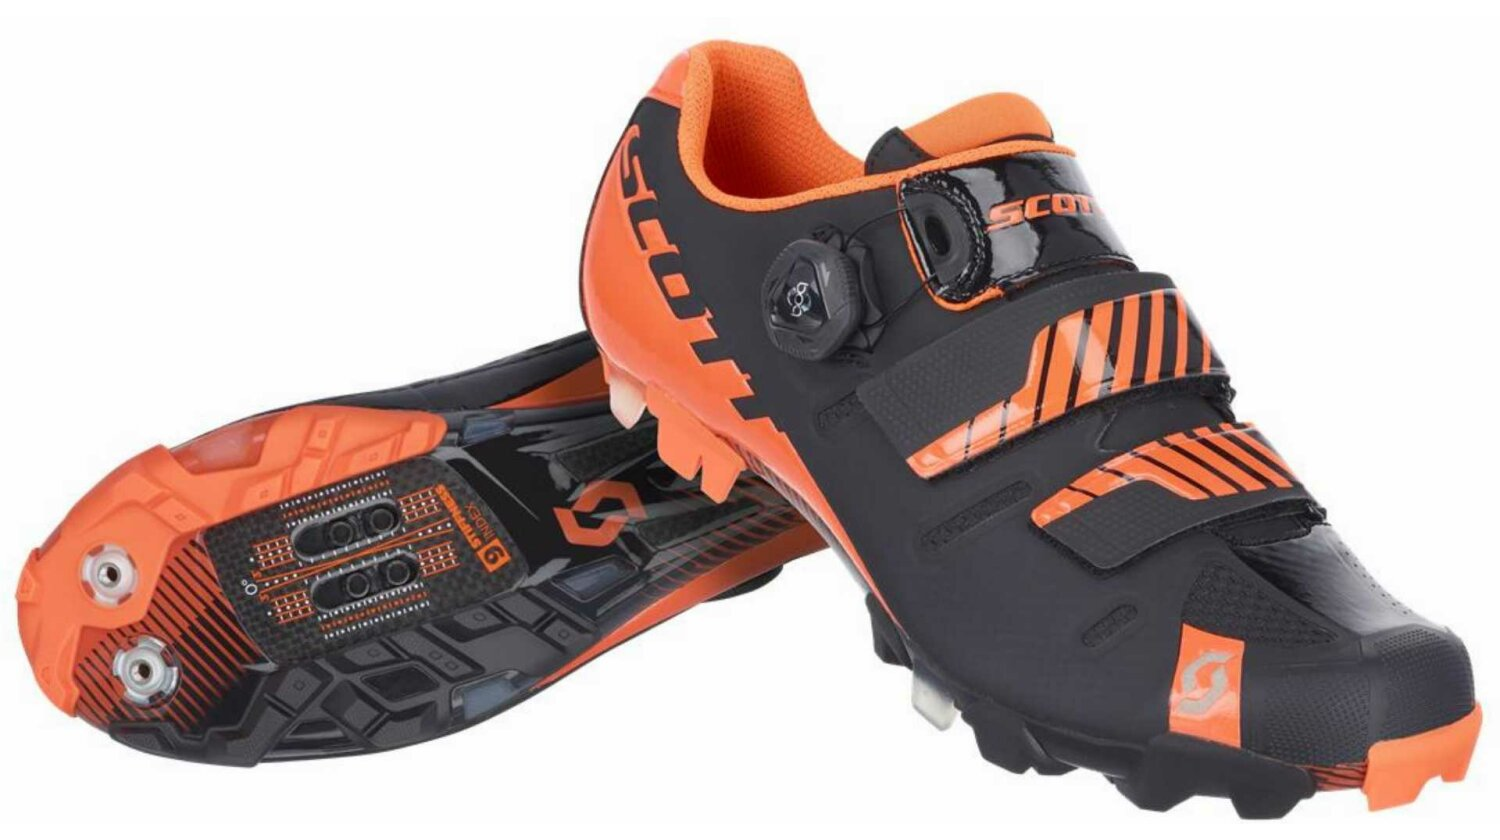 Scott MTB Premium Schuh black/neon orange gloss 48